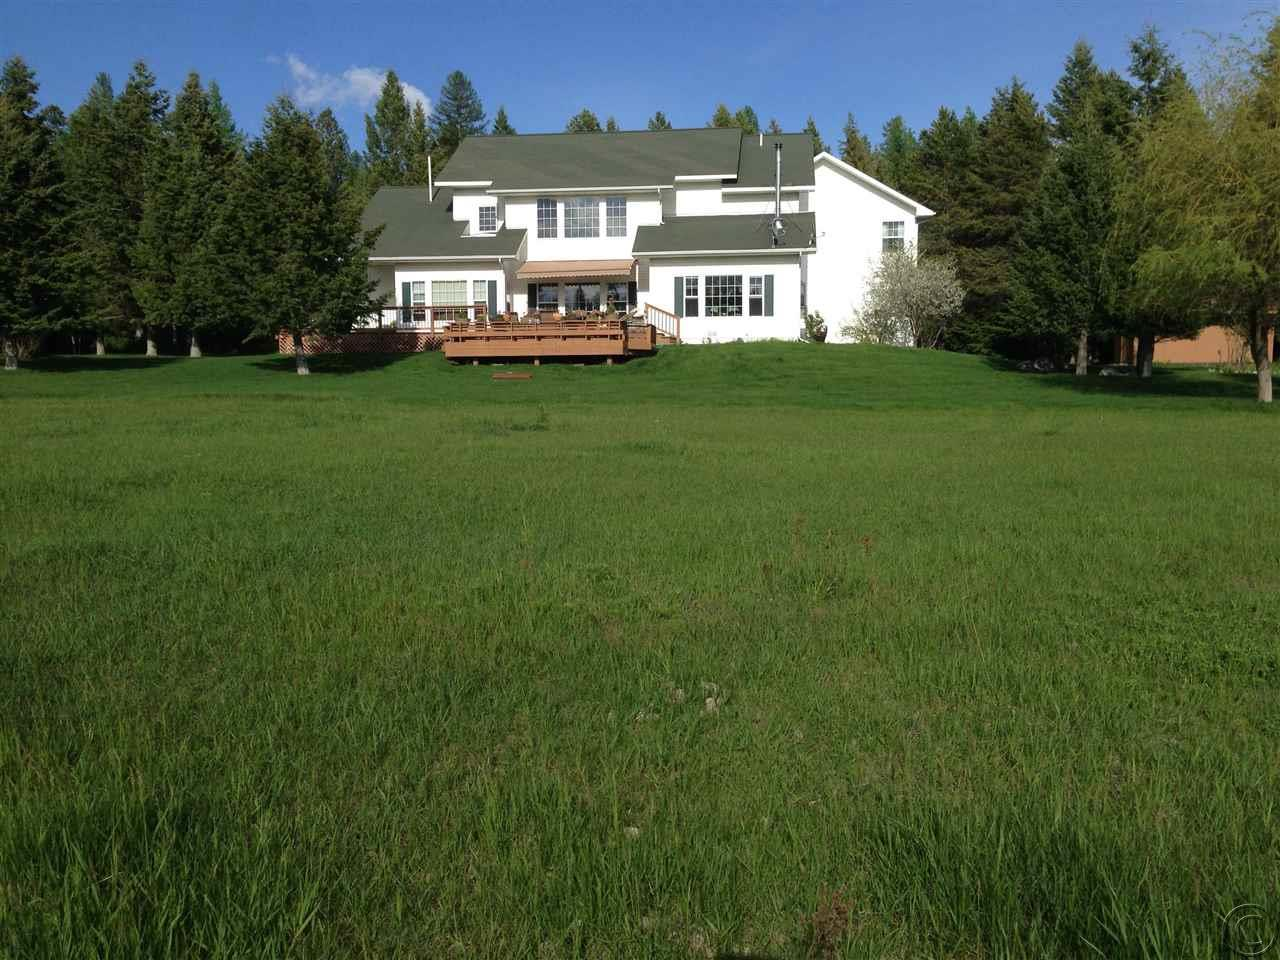 186 E Blanchard Lake Rd, Whitefish, MT 59937